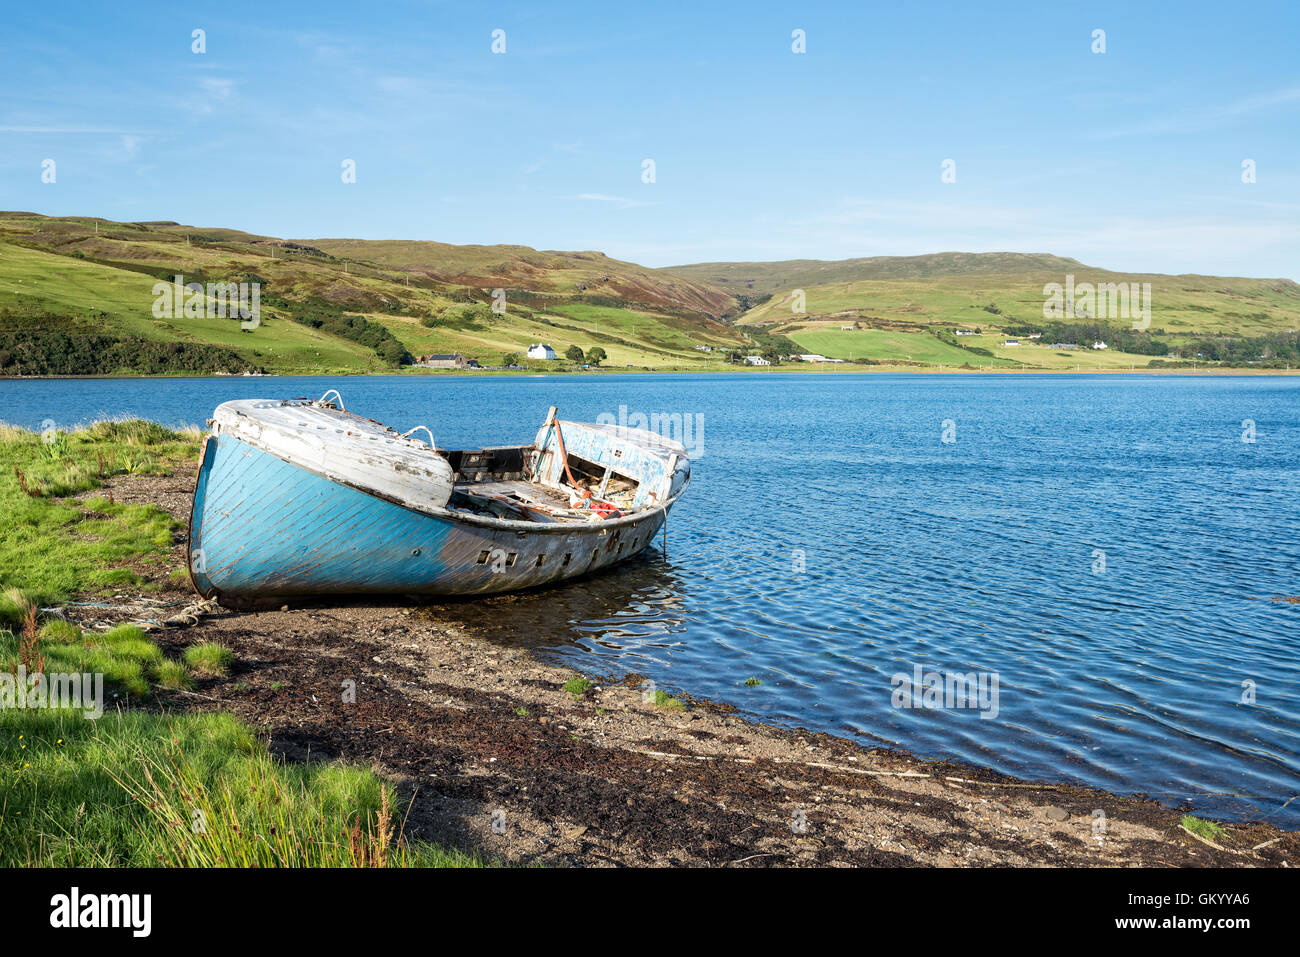 An old fishing boat on the shores of Loch Harport near Drynoch on the Isle of Skye in Scotland - Stock Image